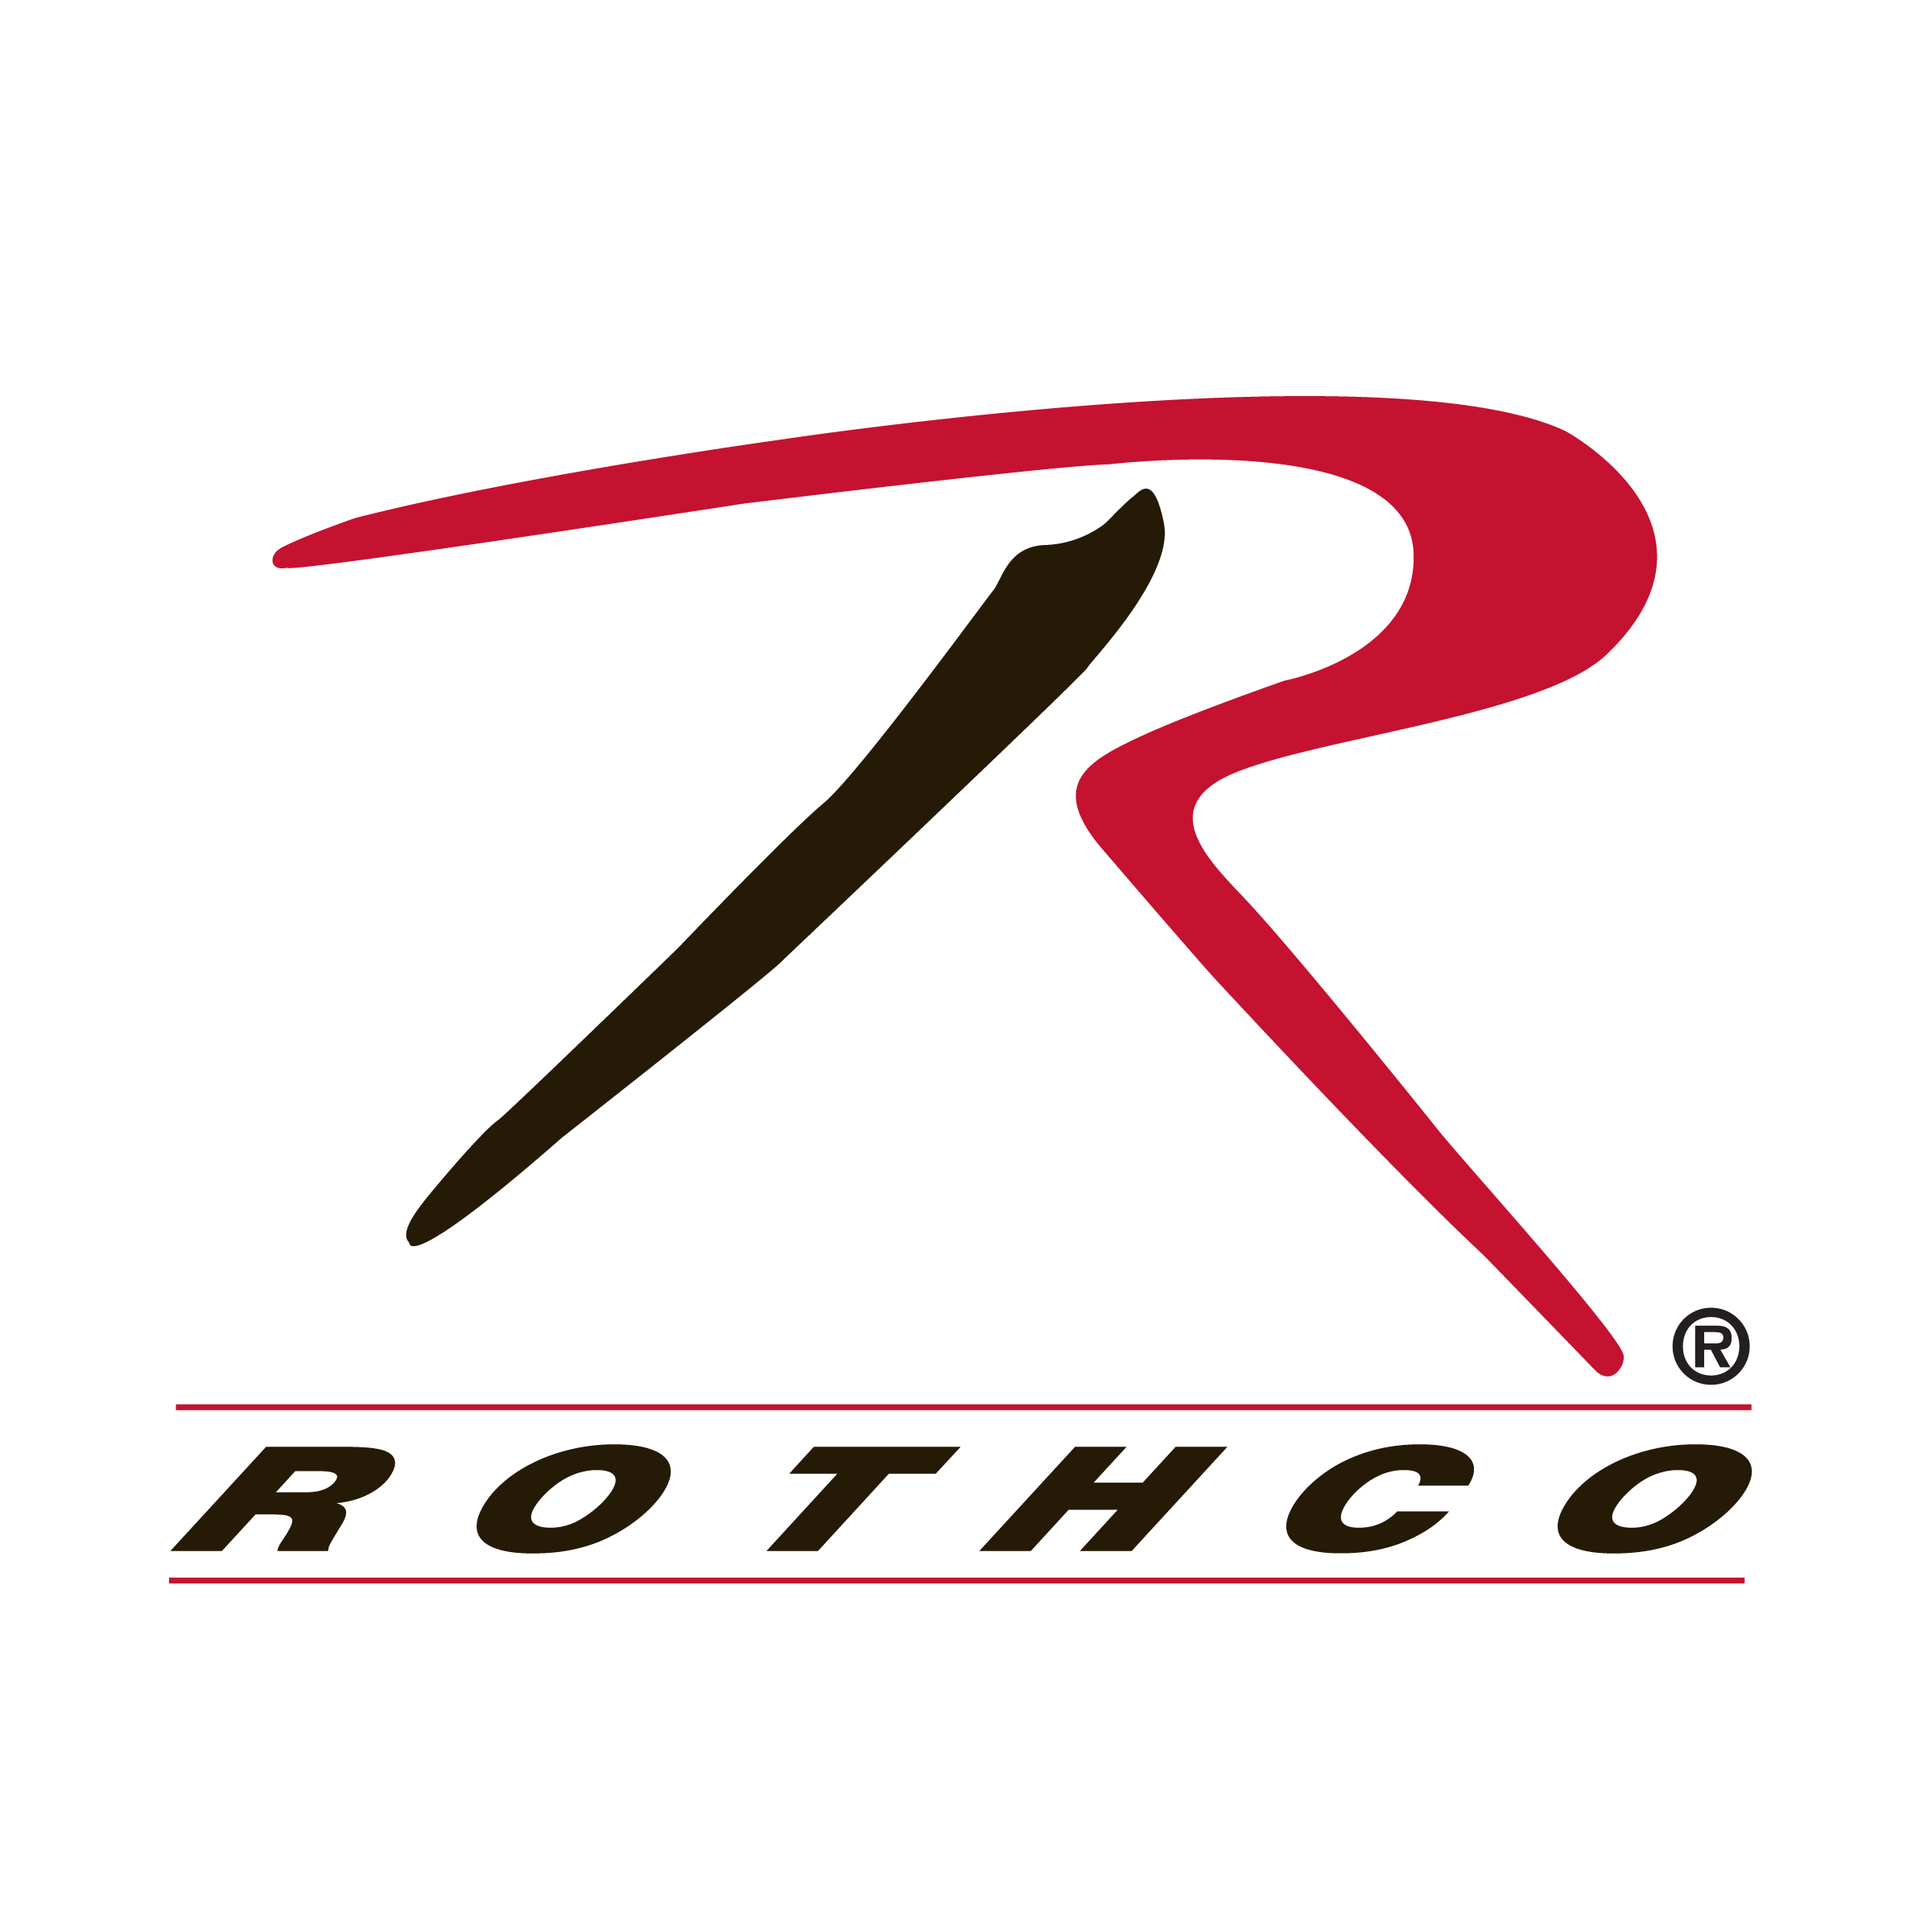 https://www.dtacticalsupply.com/wp-content/uploads/2020/04/Rothco_Traditional_Logo.jpg